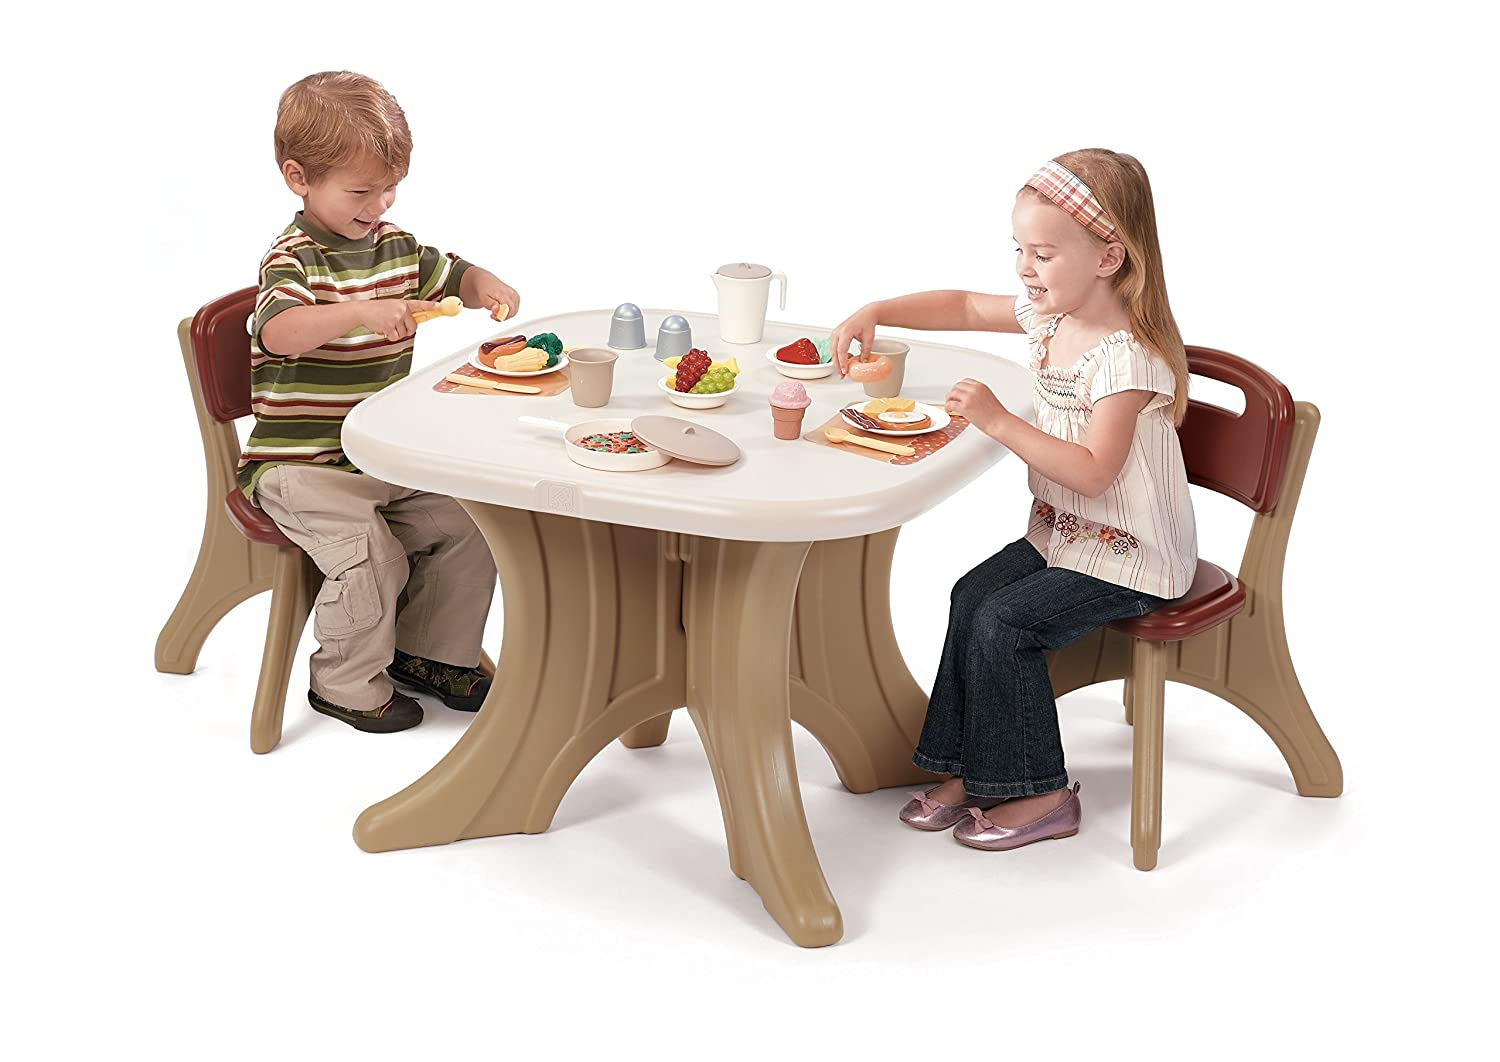 Amazon.com: Step2 Traditions Table \u0026 Chairs Set: Toys \u0026 Games